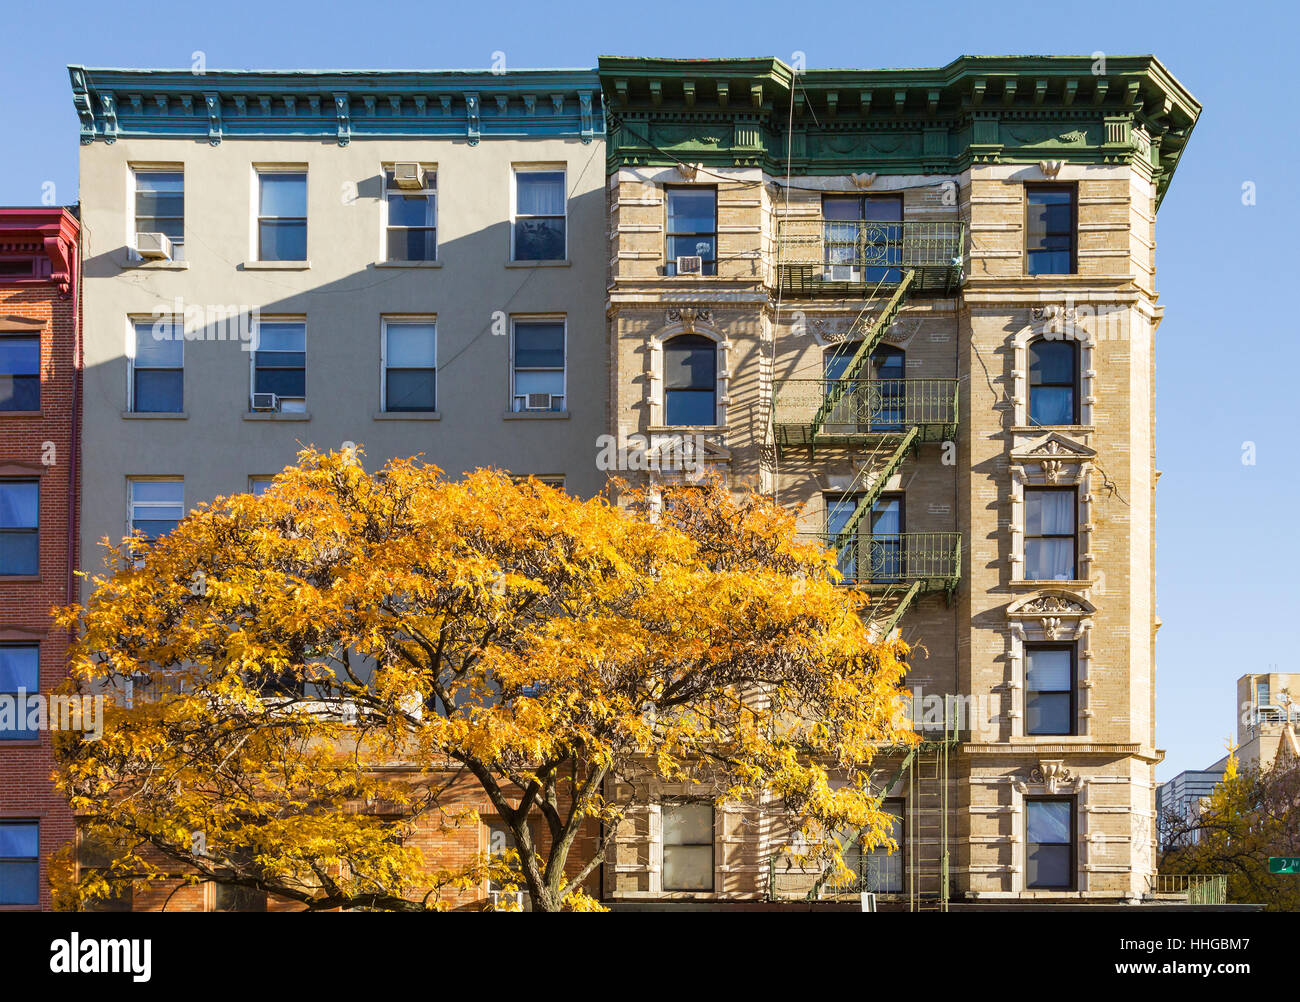 Colorful fall tree with golden leaves in front of an old apartment building on 2nd Avenue in the East Village of - Stock Image